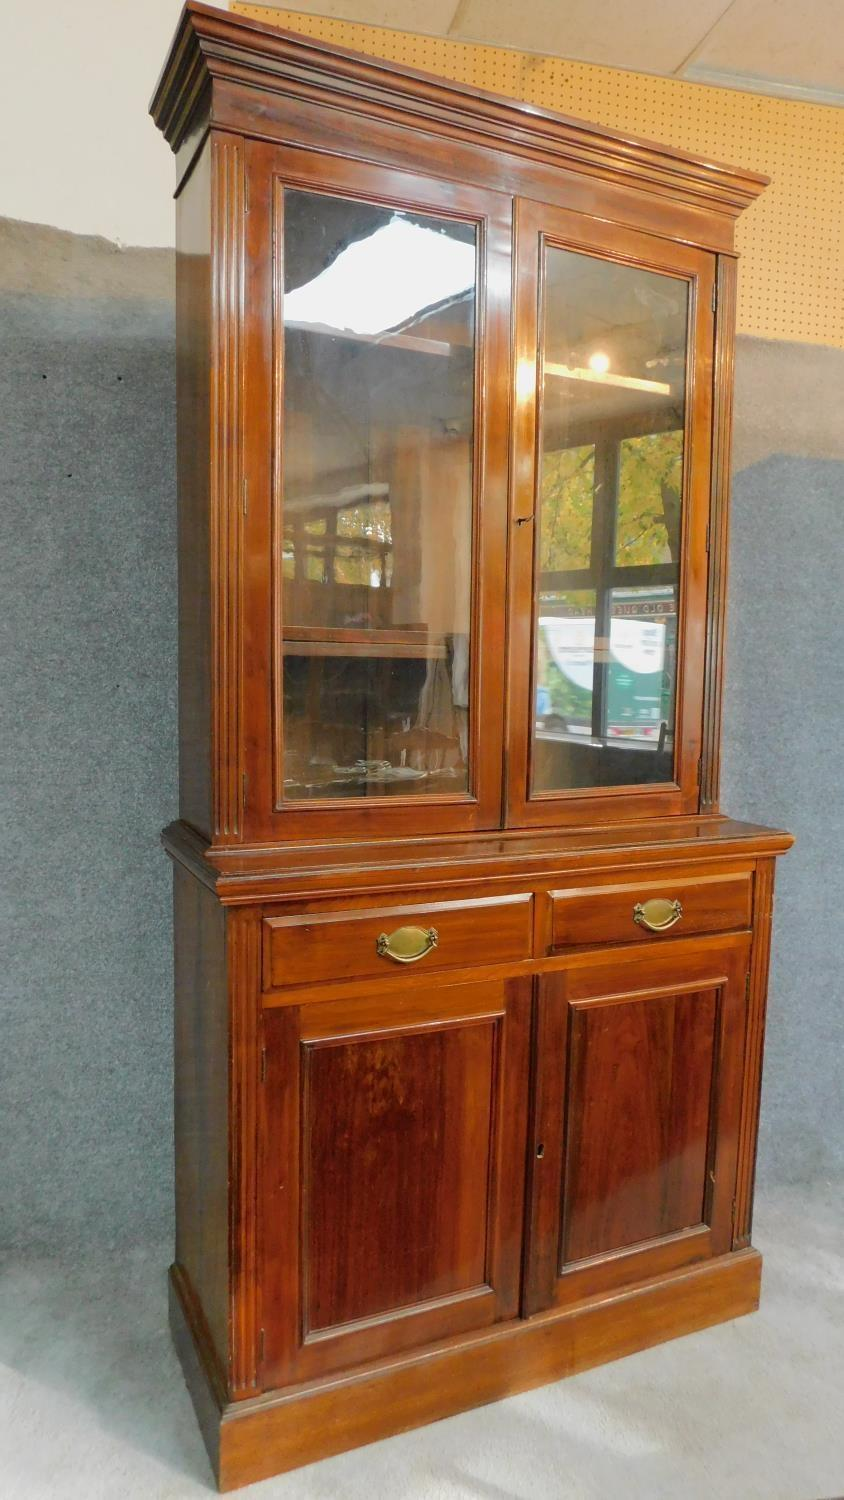 A late 19th century walnut library bookcase with glazed upper section above pair of frieze drawers - Image 3 of 4